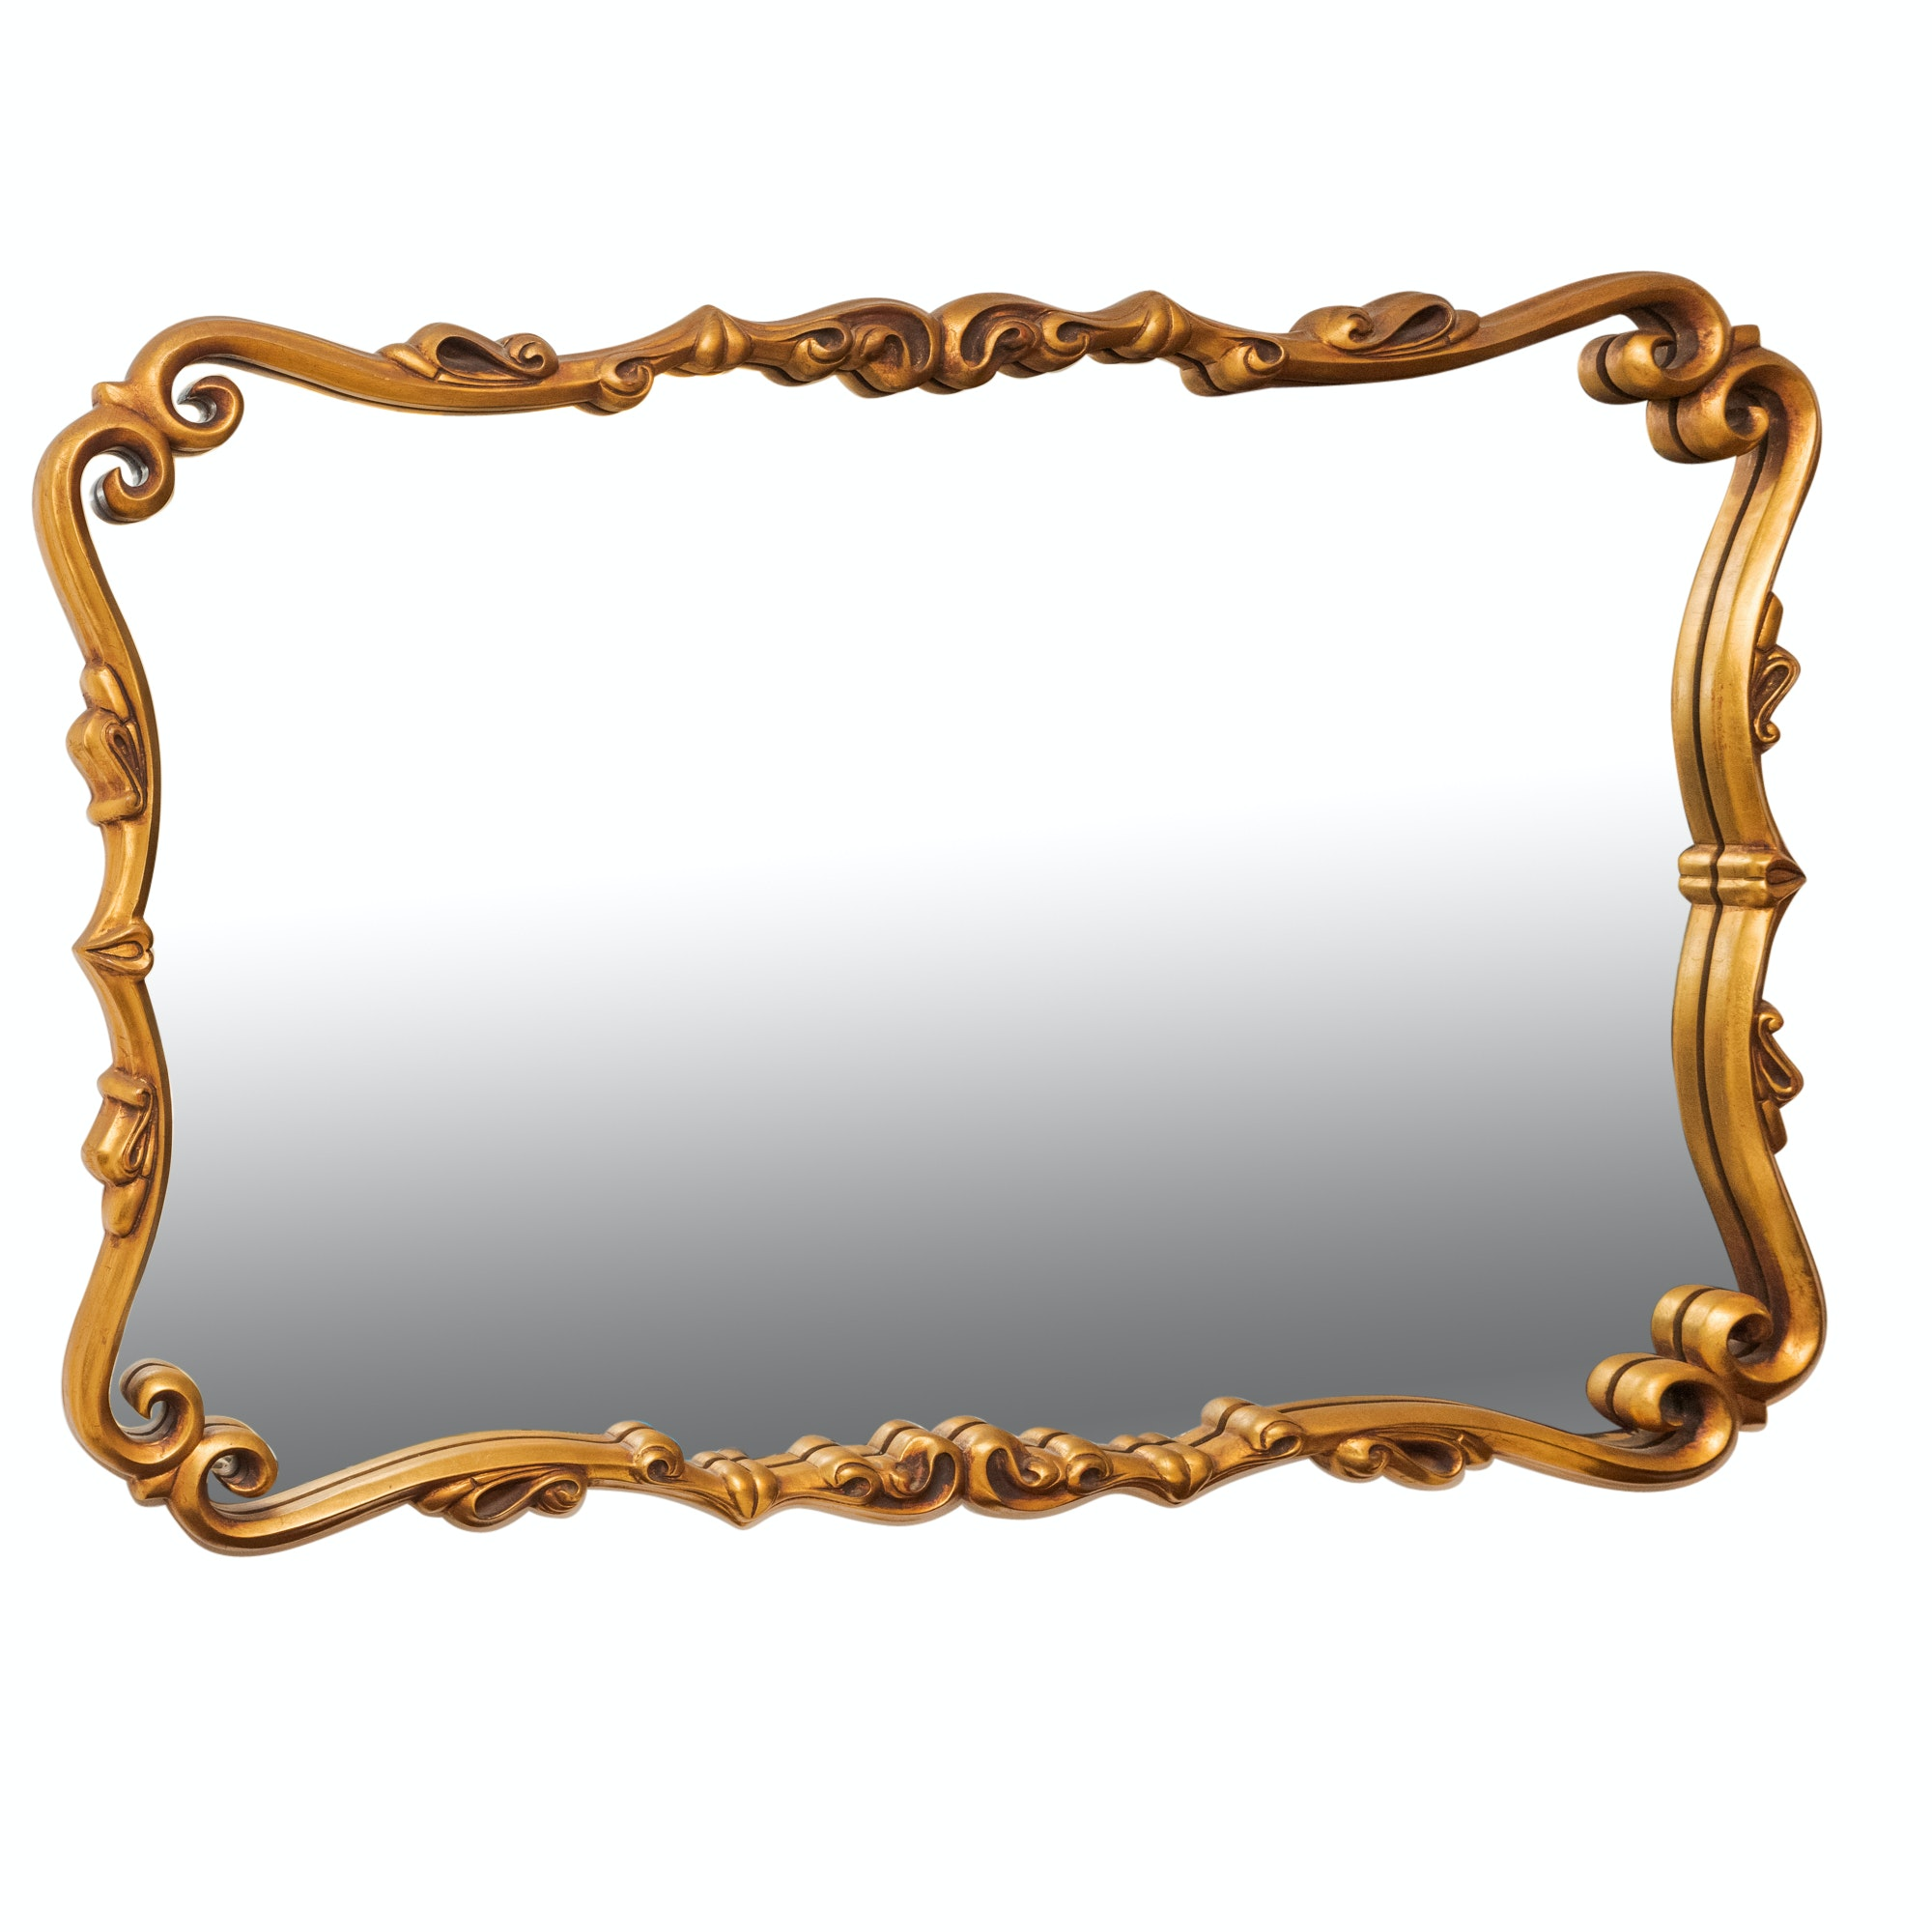 Gilt Finished Framed Wall Mirror with Scrolled Design